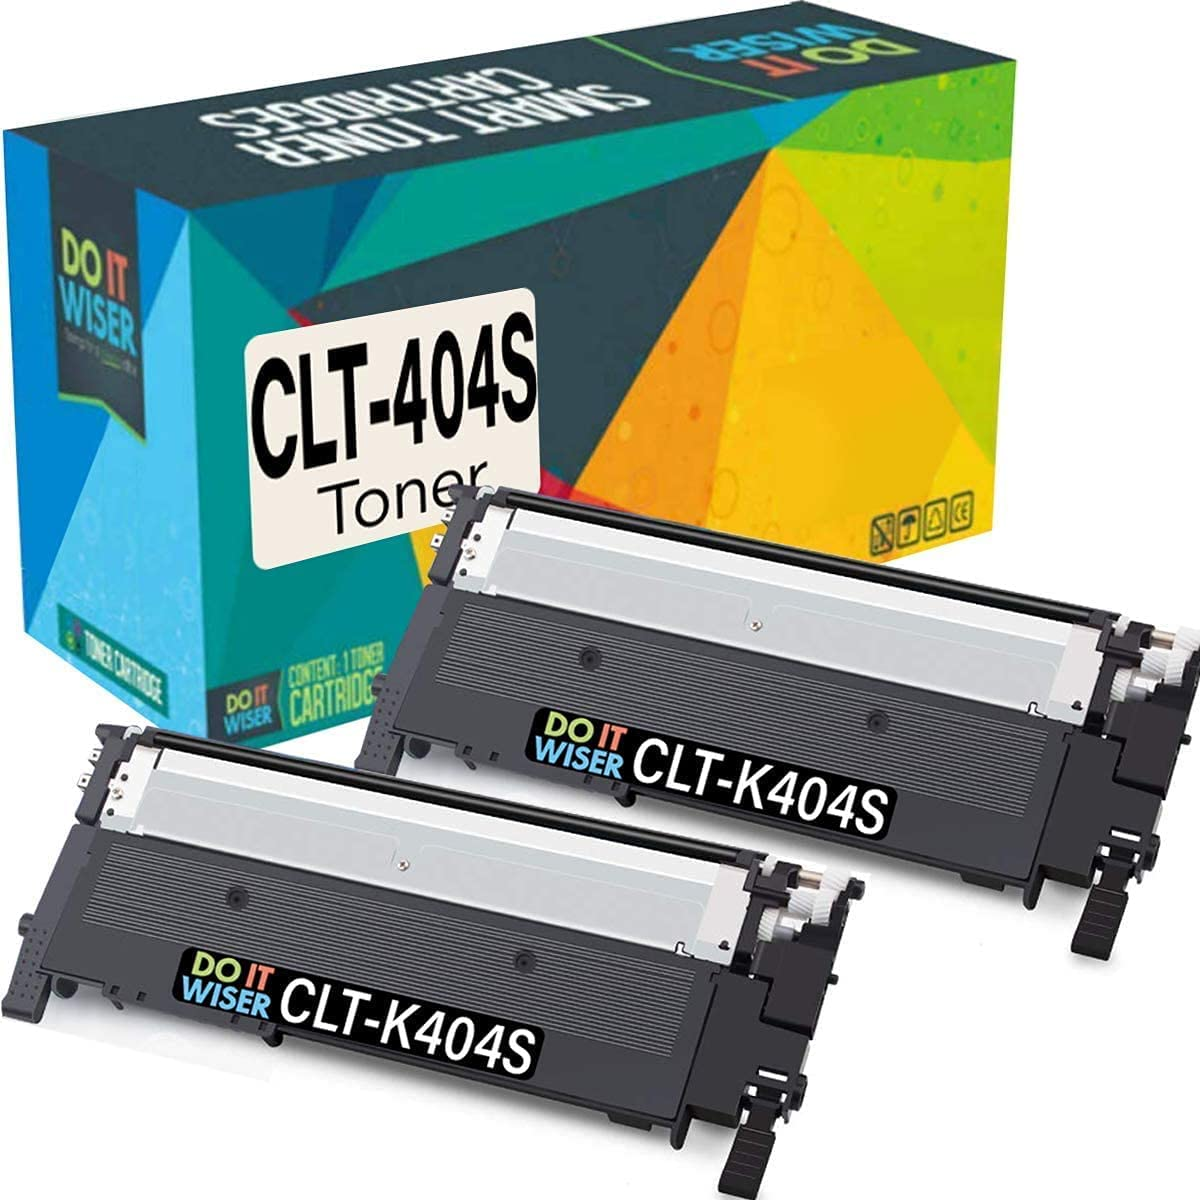 Do it Wiser Compatible Toner Cartridge Replacement for Samsung 404 404S CLT-K404S to use with Xpress C430 C430W C480 C480FW Xpress SL-C430W SL-C480FW Printer tray (Black, 2 Pack)